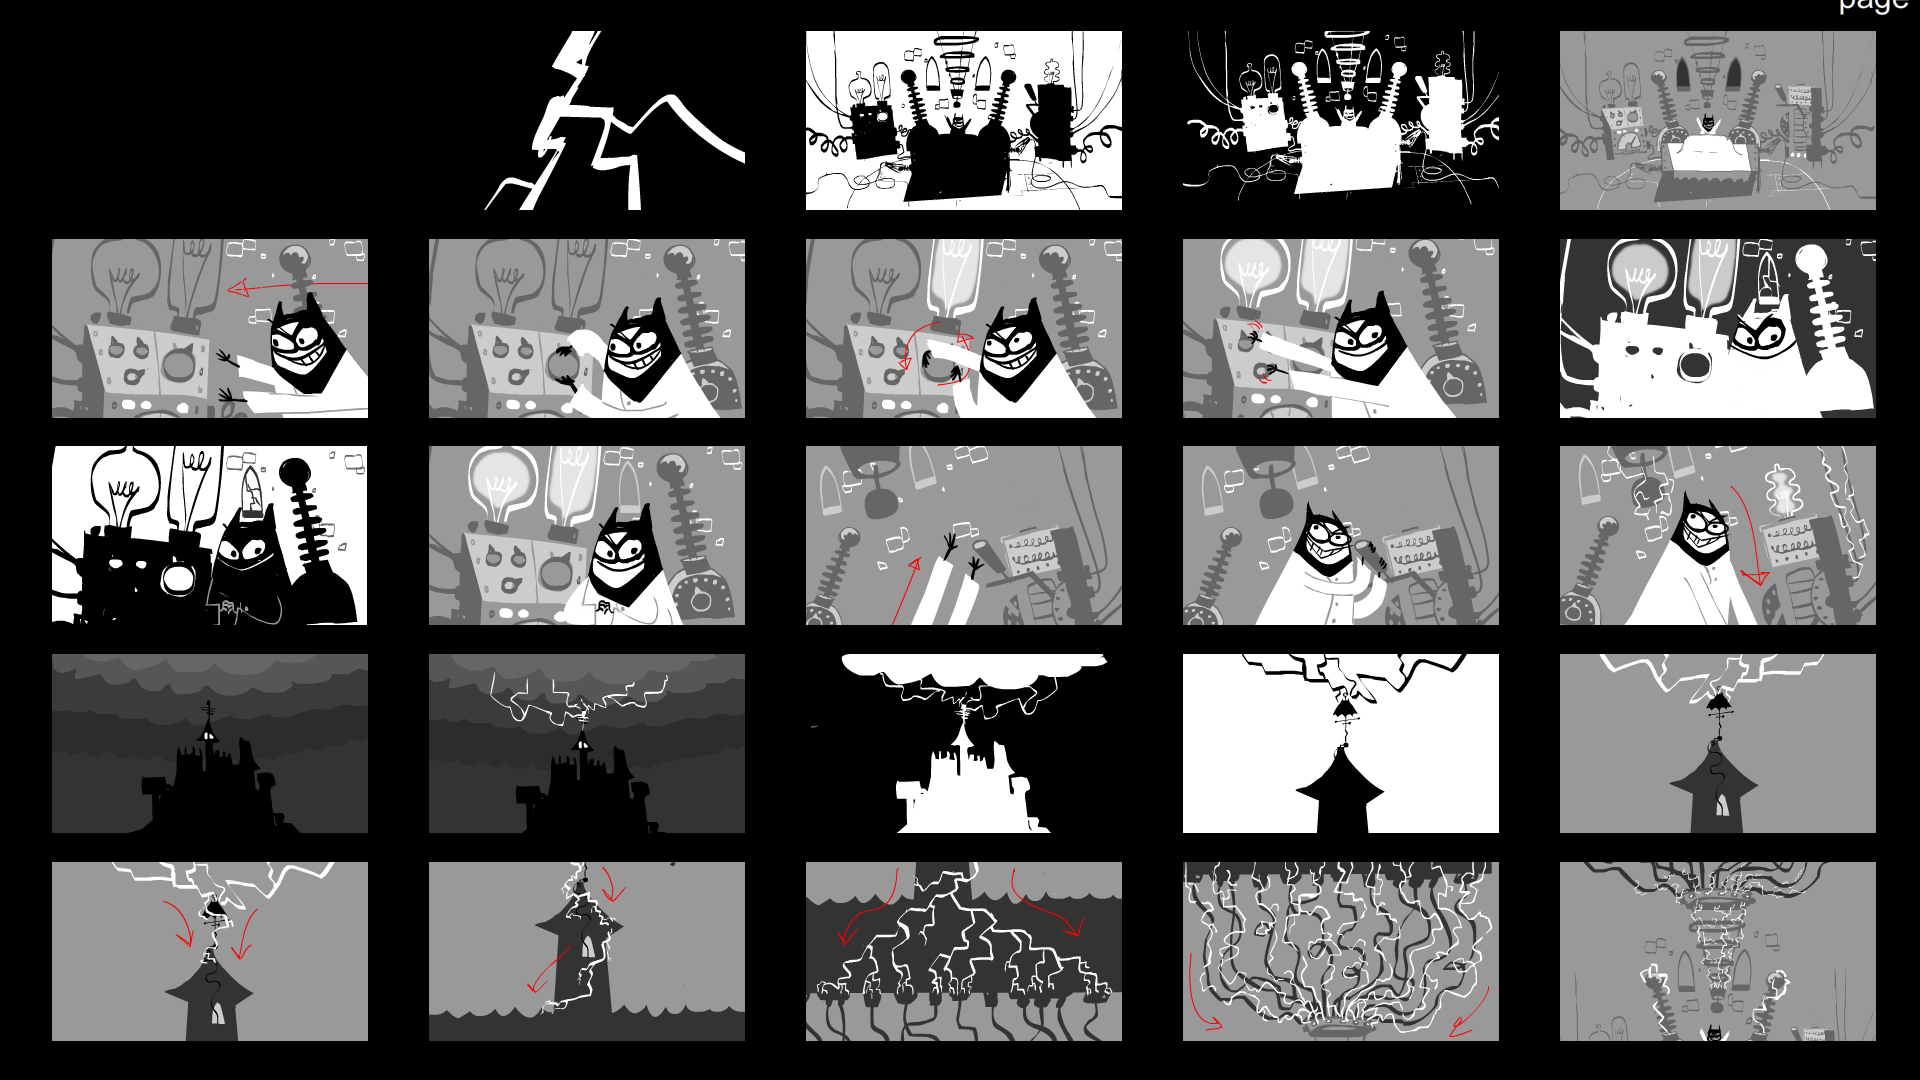 MikeOwens_STORYBOARDS_LilBat_Frankenstien_Page_1.png